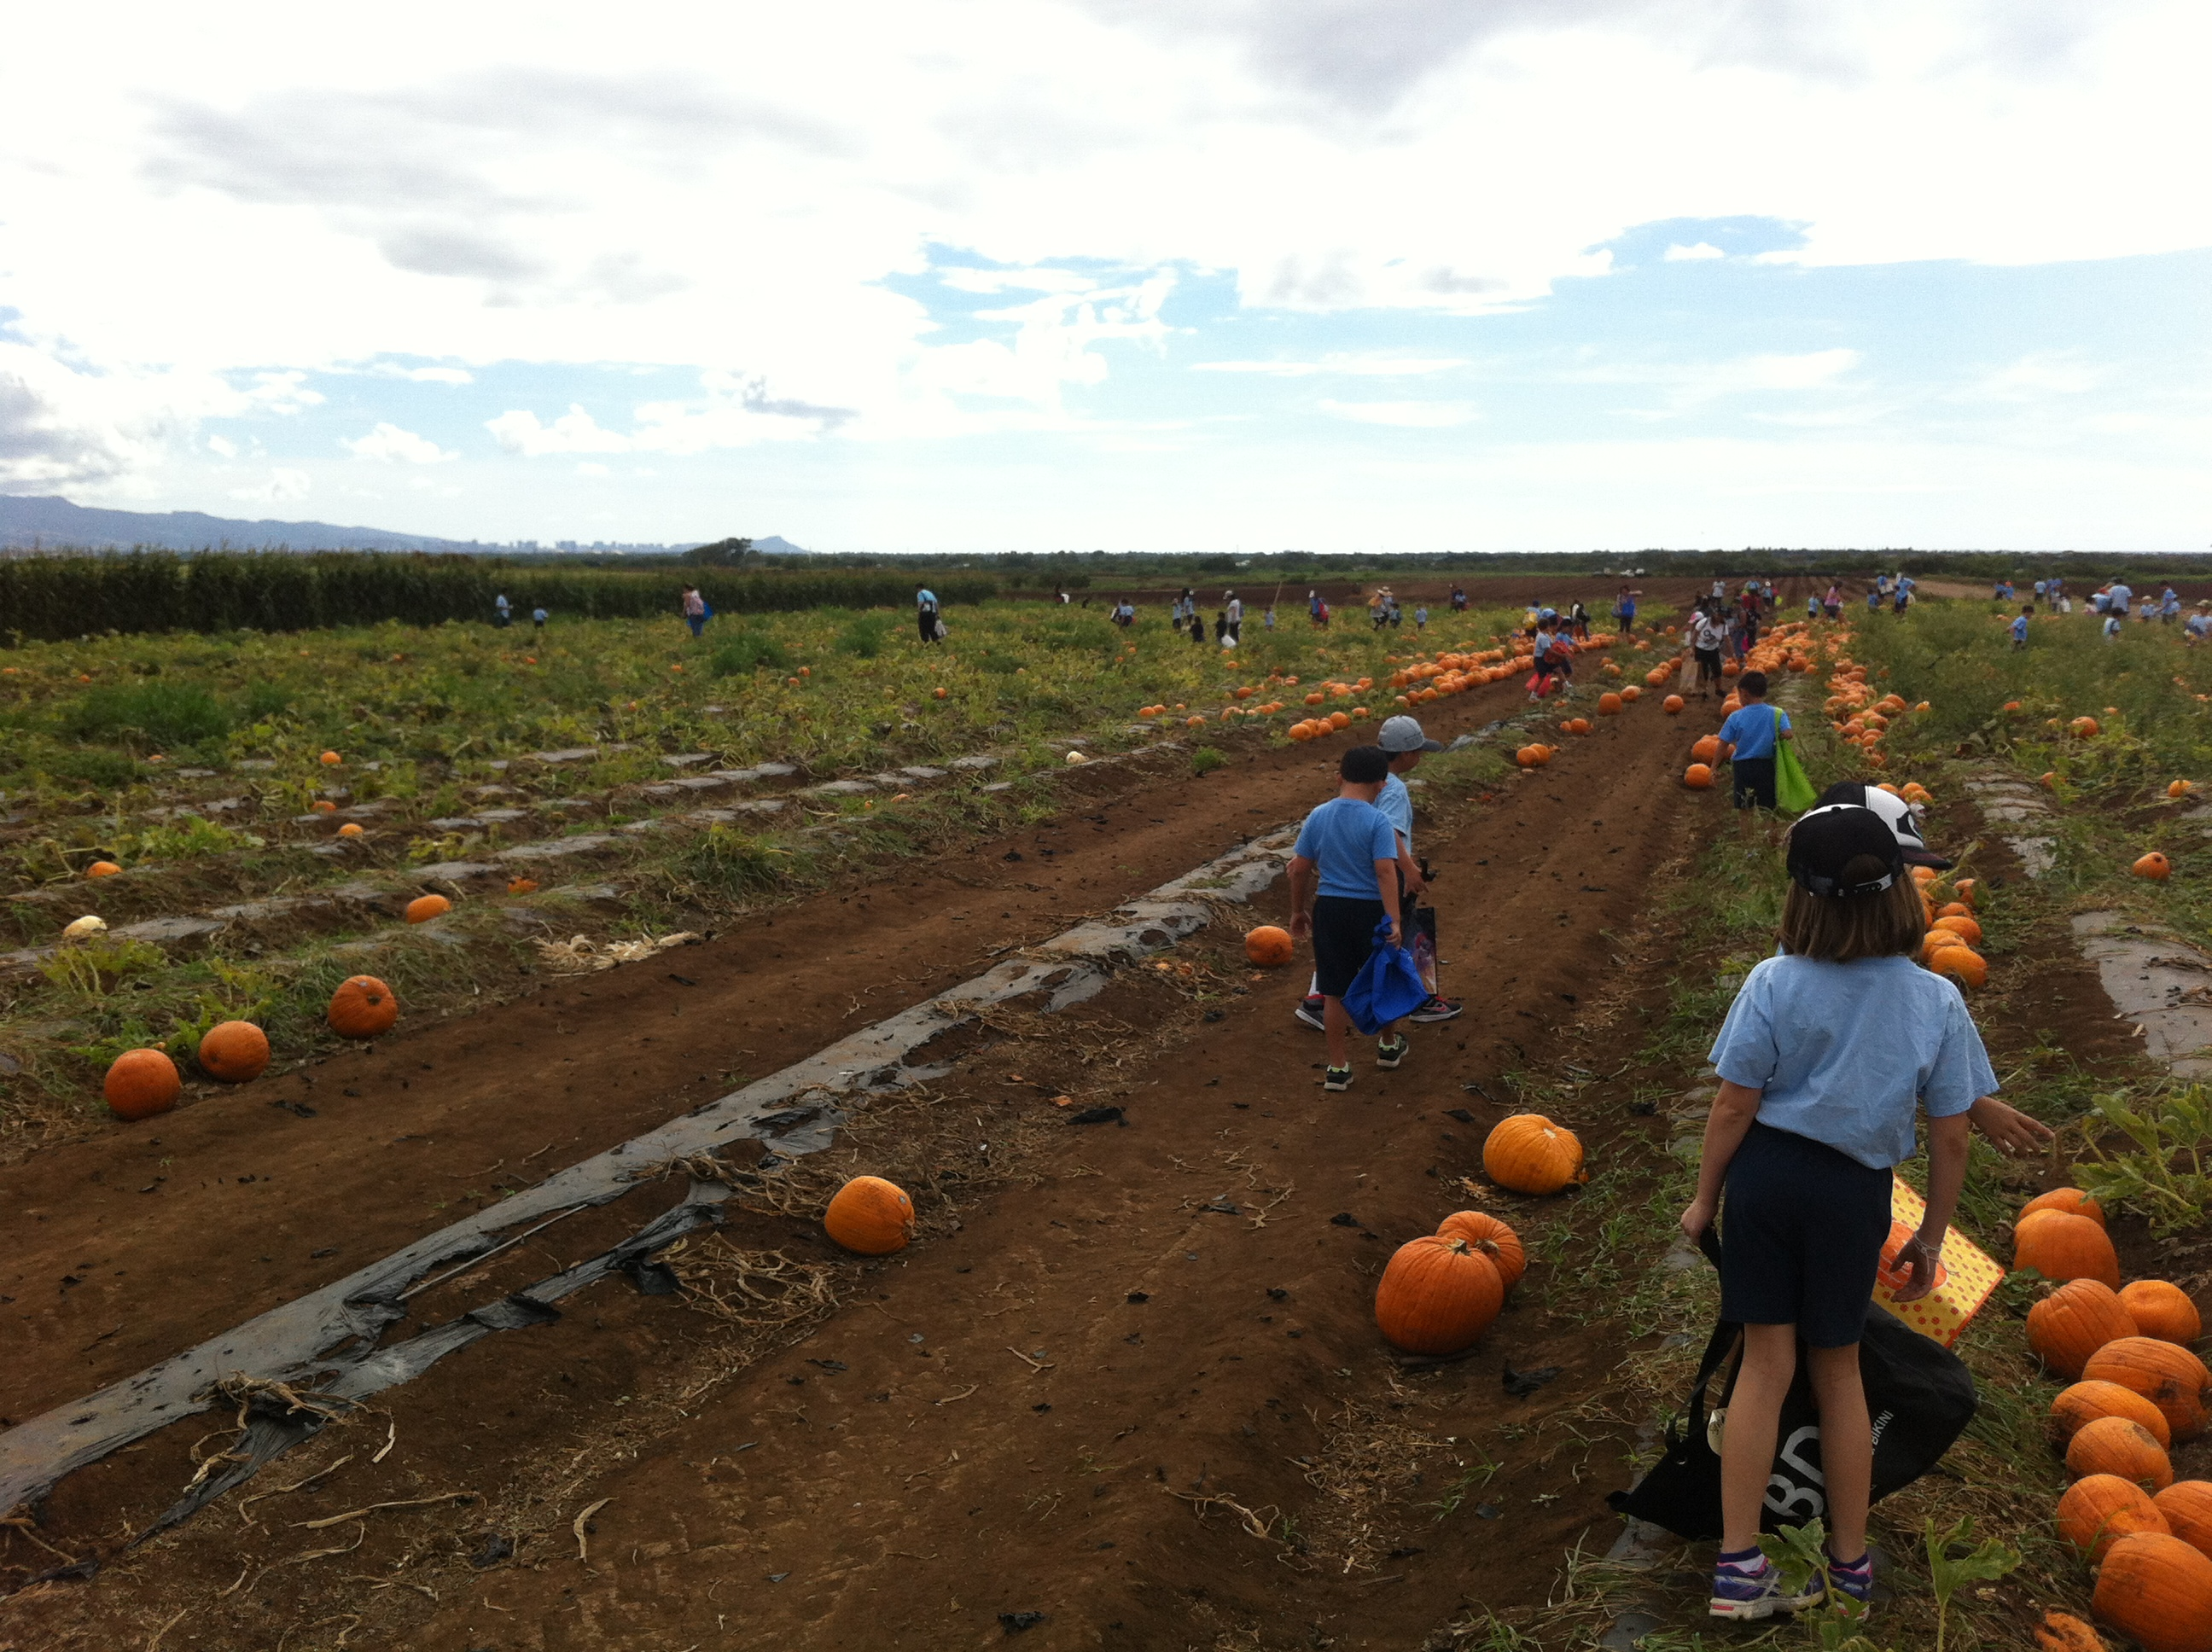 Aloun Farms Pumpkin Patch in Kapolei